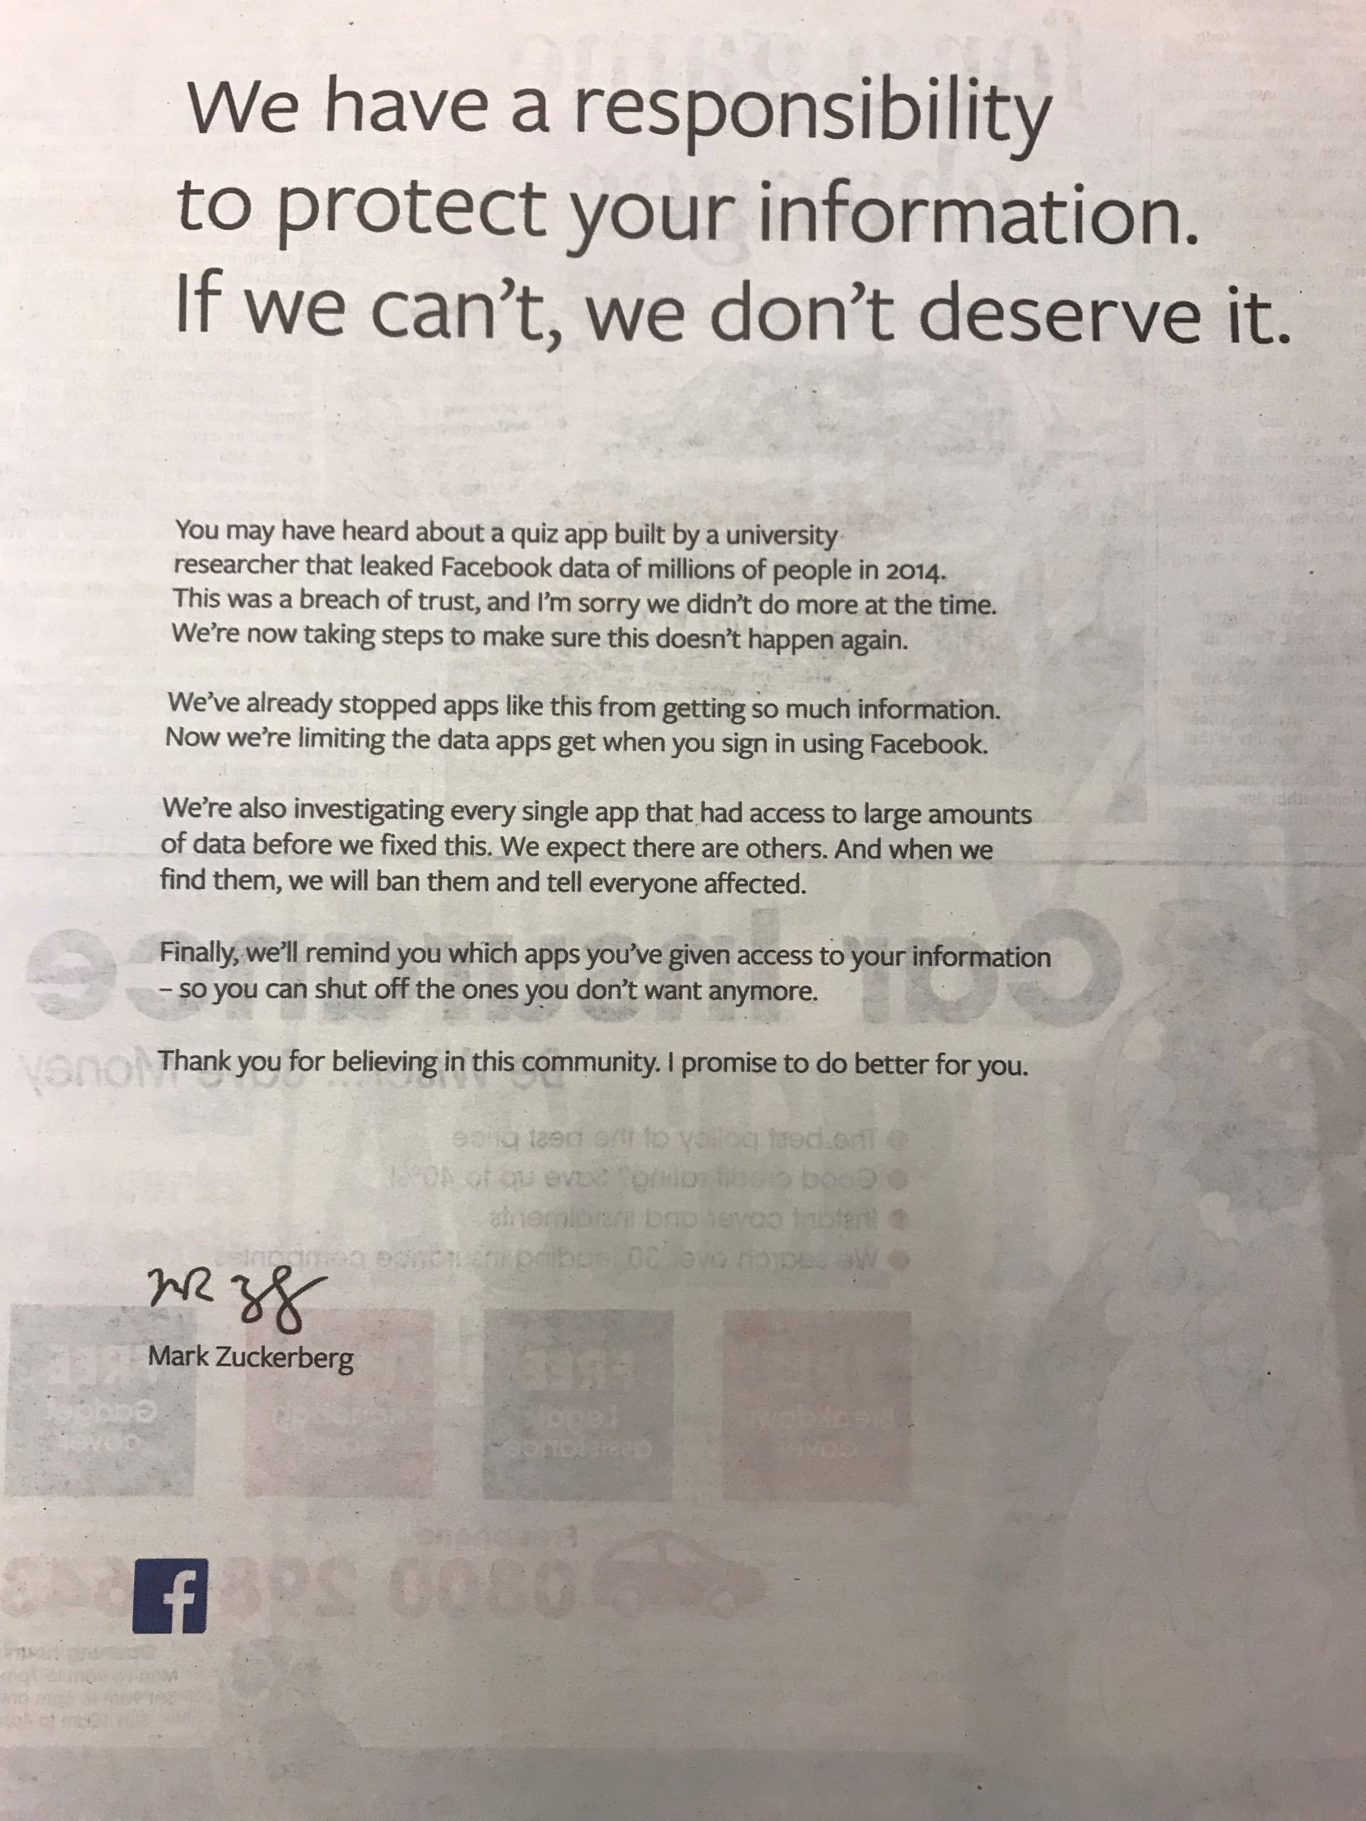 facebook in privacy breach essay This week marks the 10th anniversary of facebook, and to help commemorate this milestone i wrote an essay for the washington post that postulates an early framework of mark zuckerberg's.